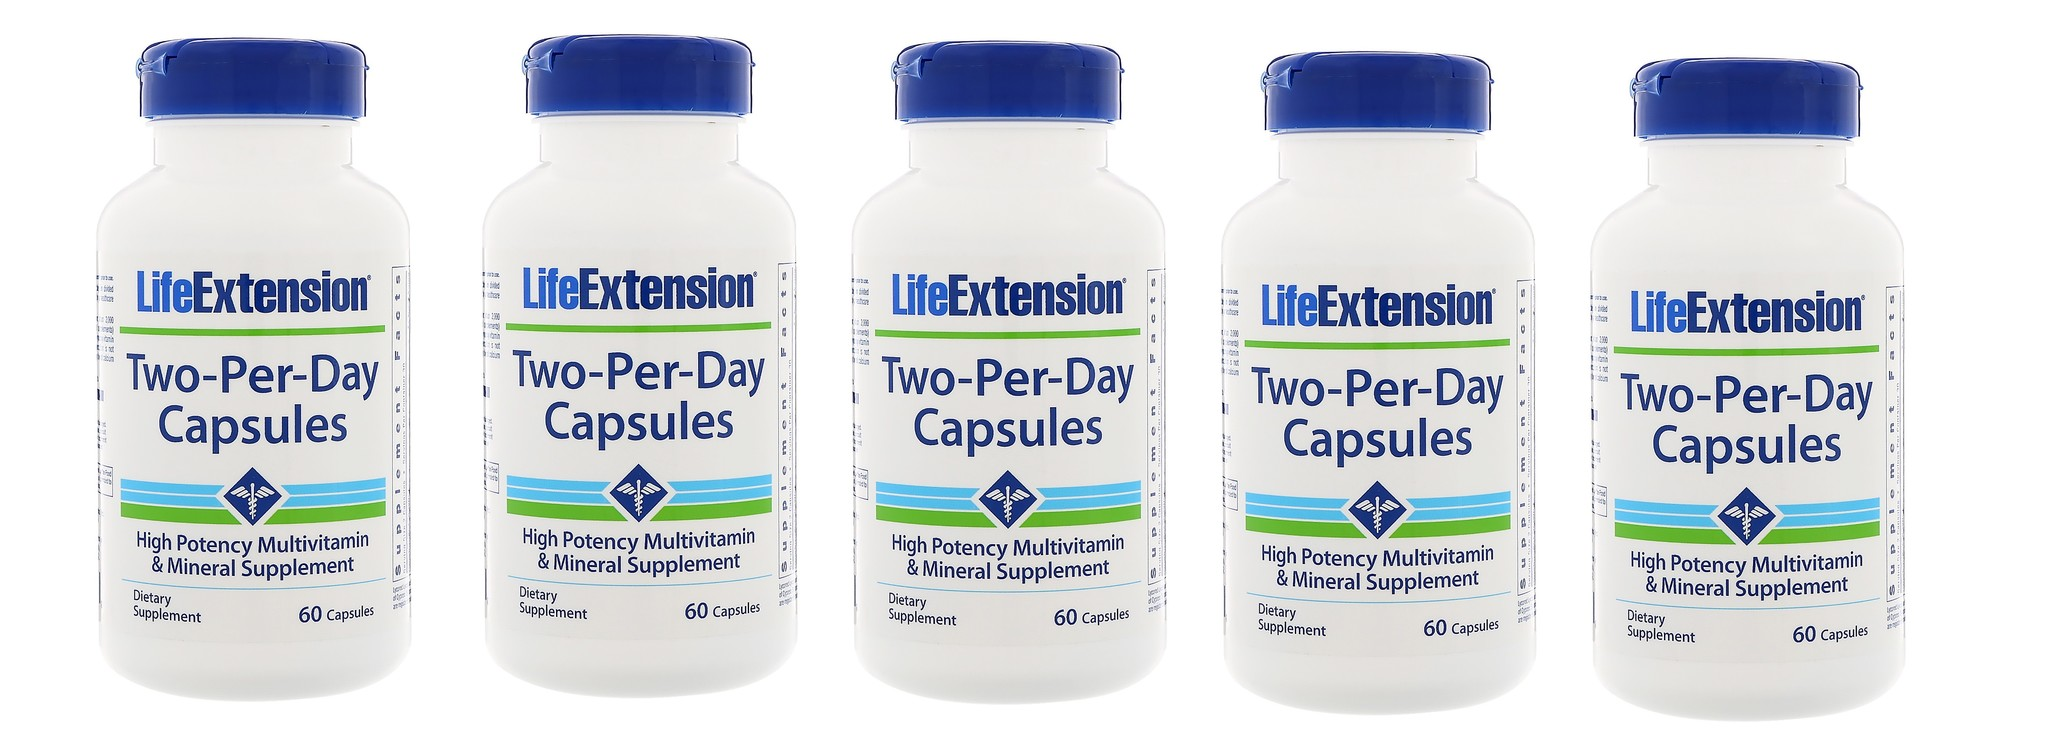 Life Extension Two-per-day Capsules, 60 Capsules, 5-packs